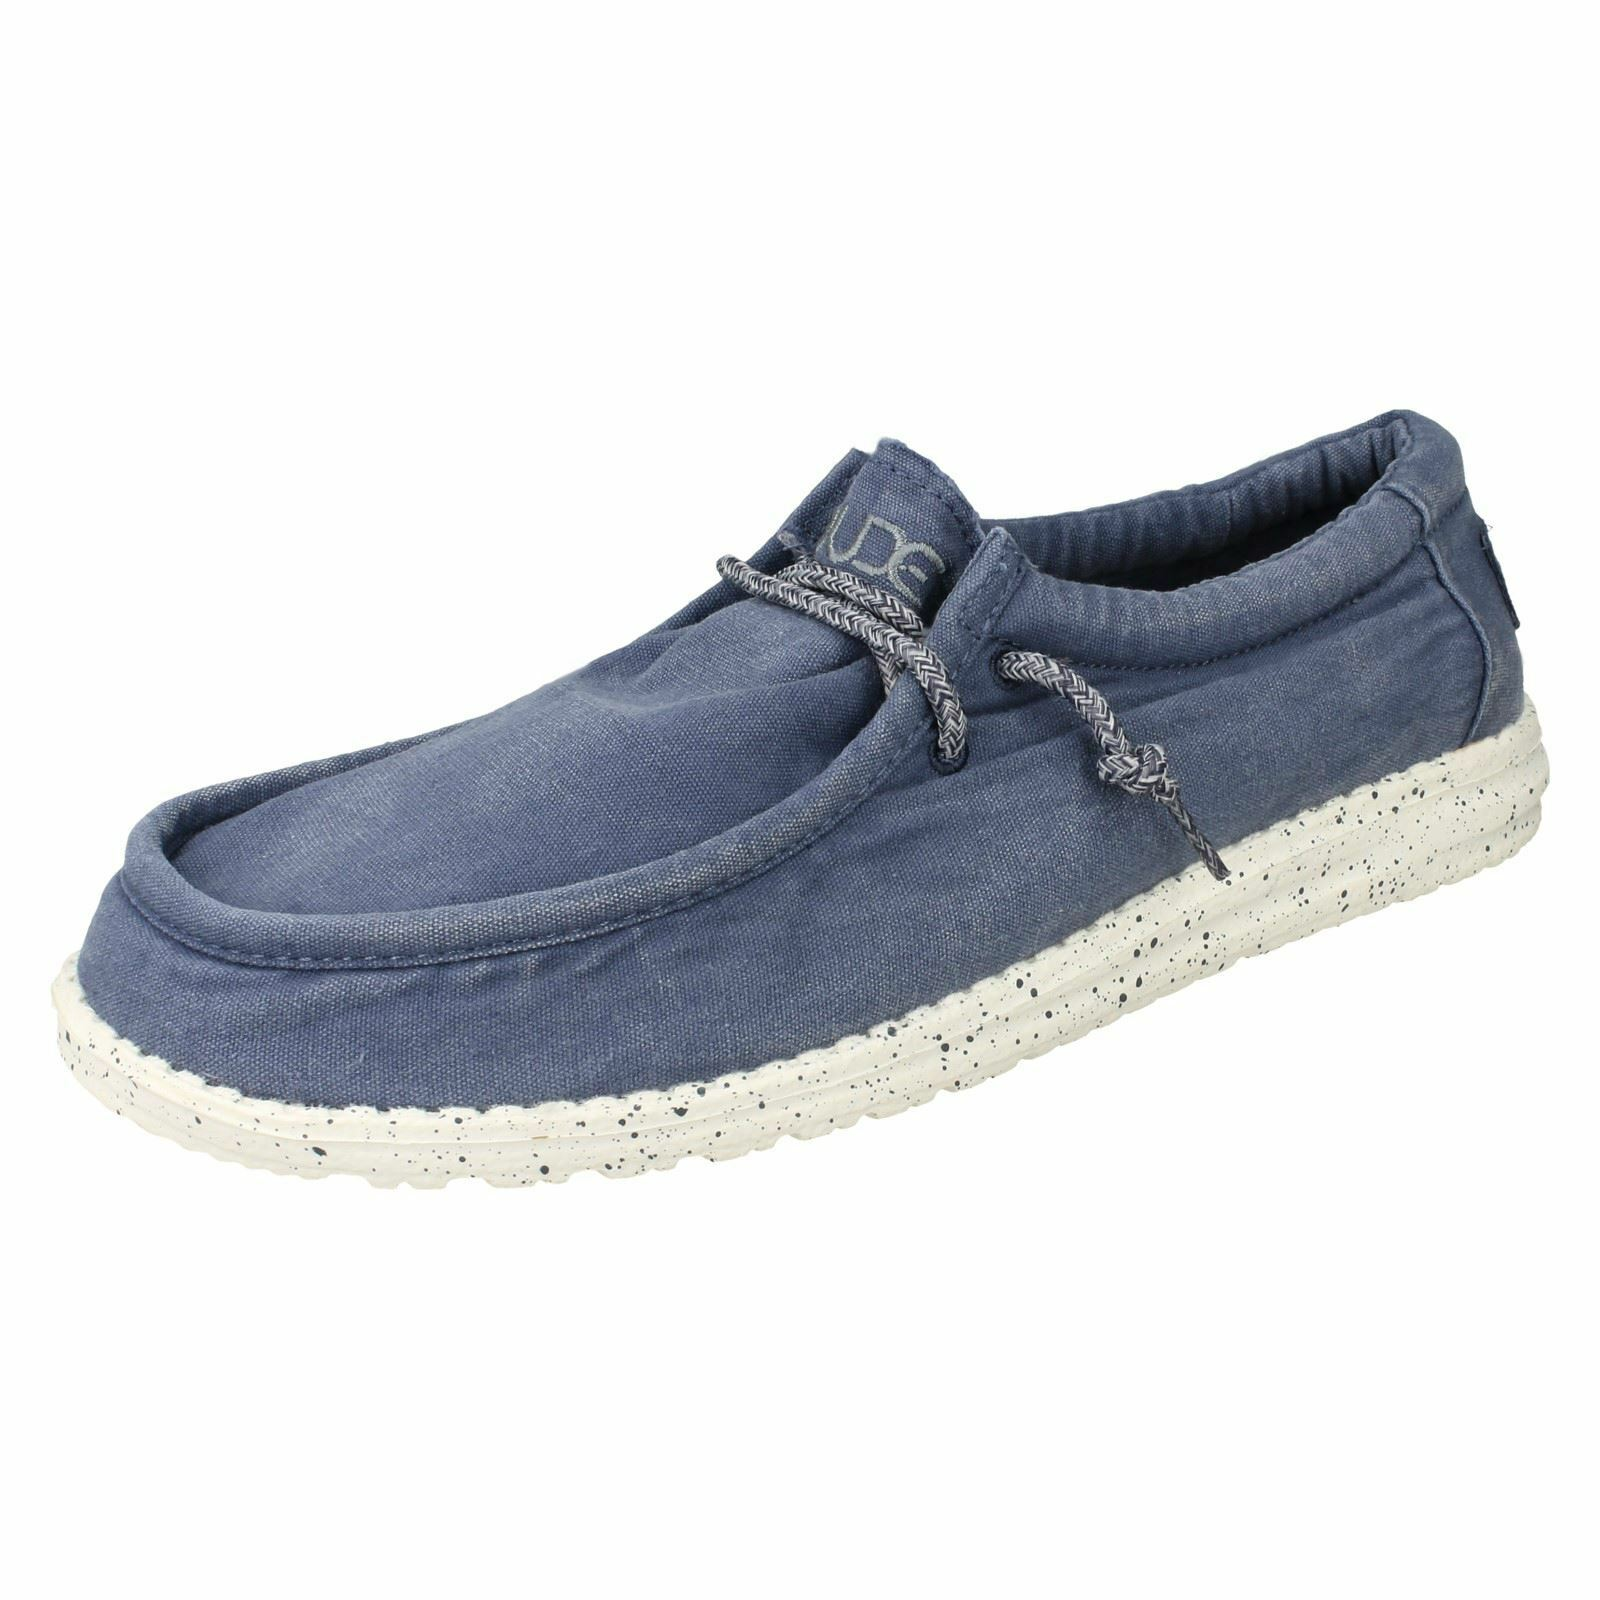 Mens Hey Dude Moccasin shoes - Wally Washed